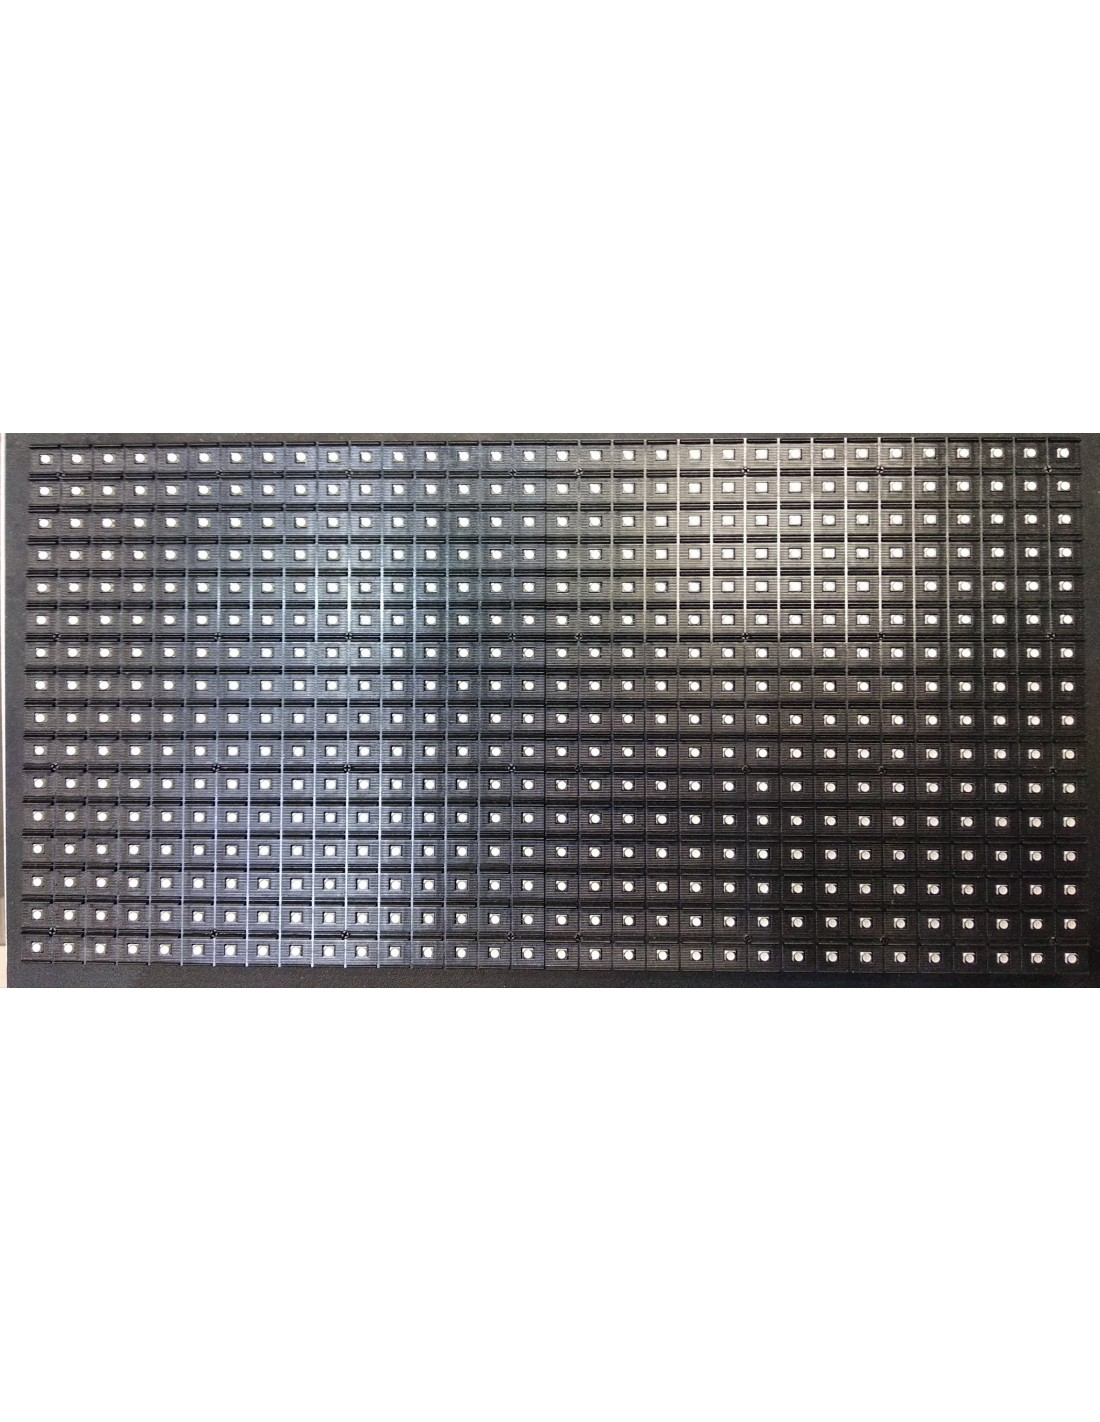 LED module 16x32 rgb p10 Matrix display screen indoor